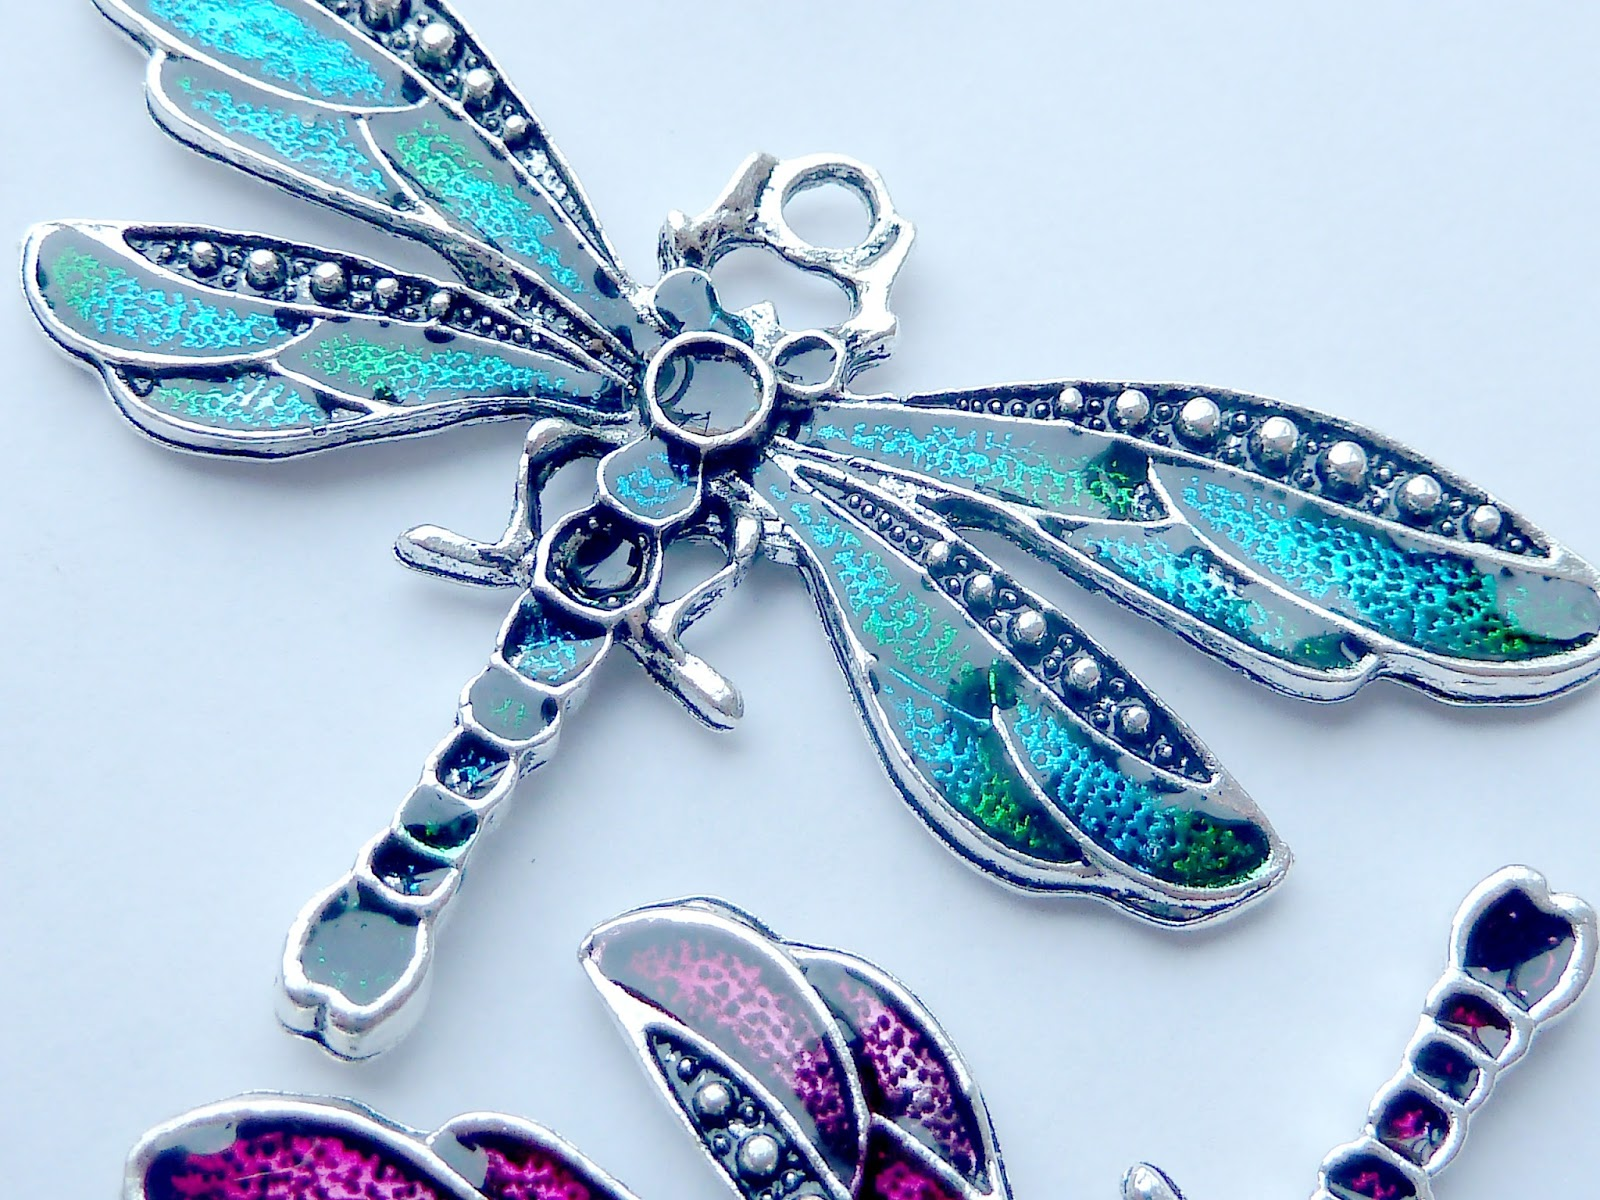 Jewelry Stores Network Sterling Silver Plated Enameled Fish Lobster Clasp Charm 12x17mm